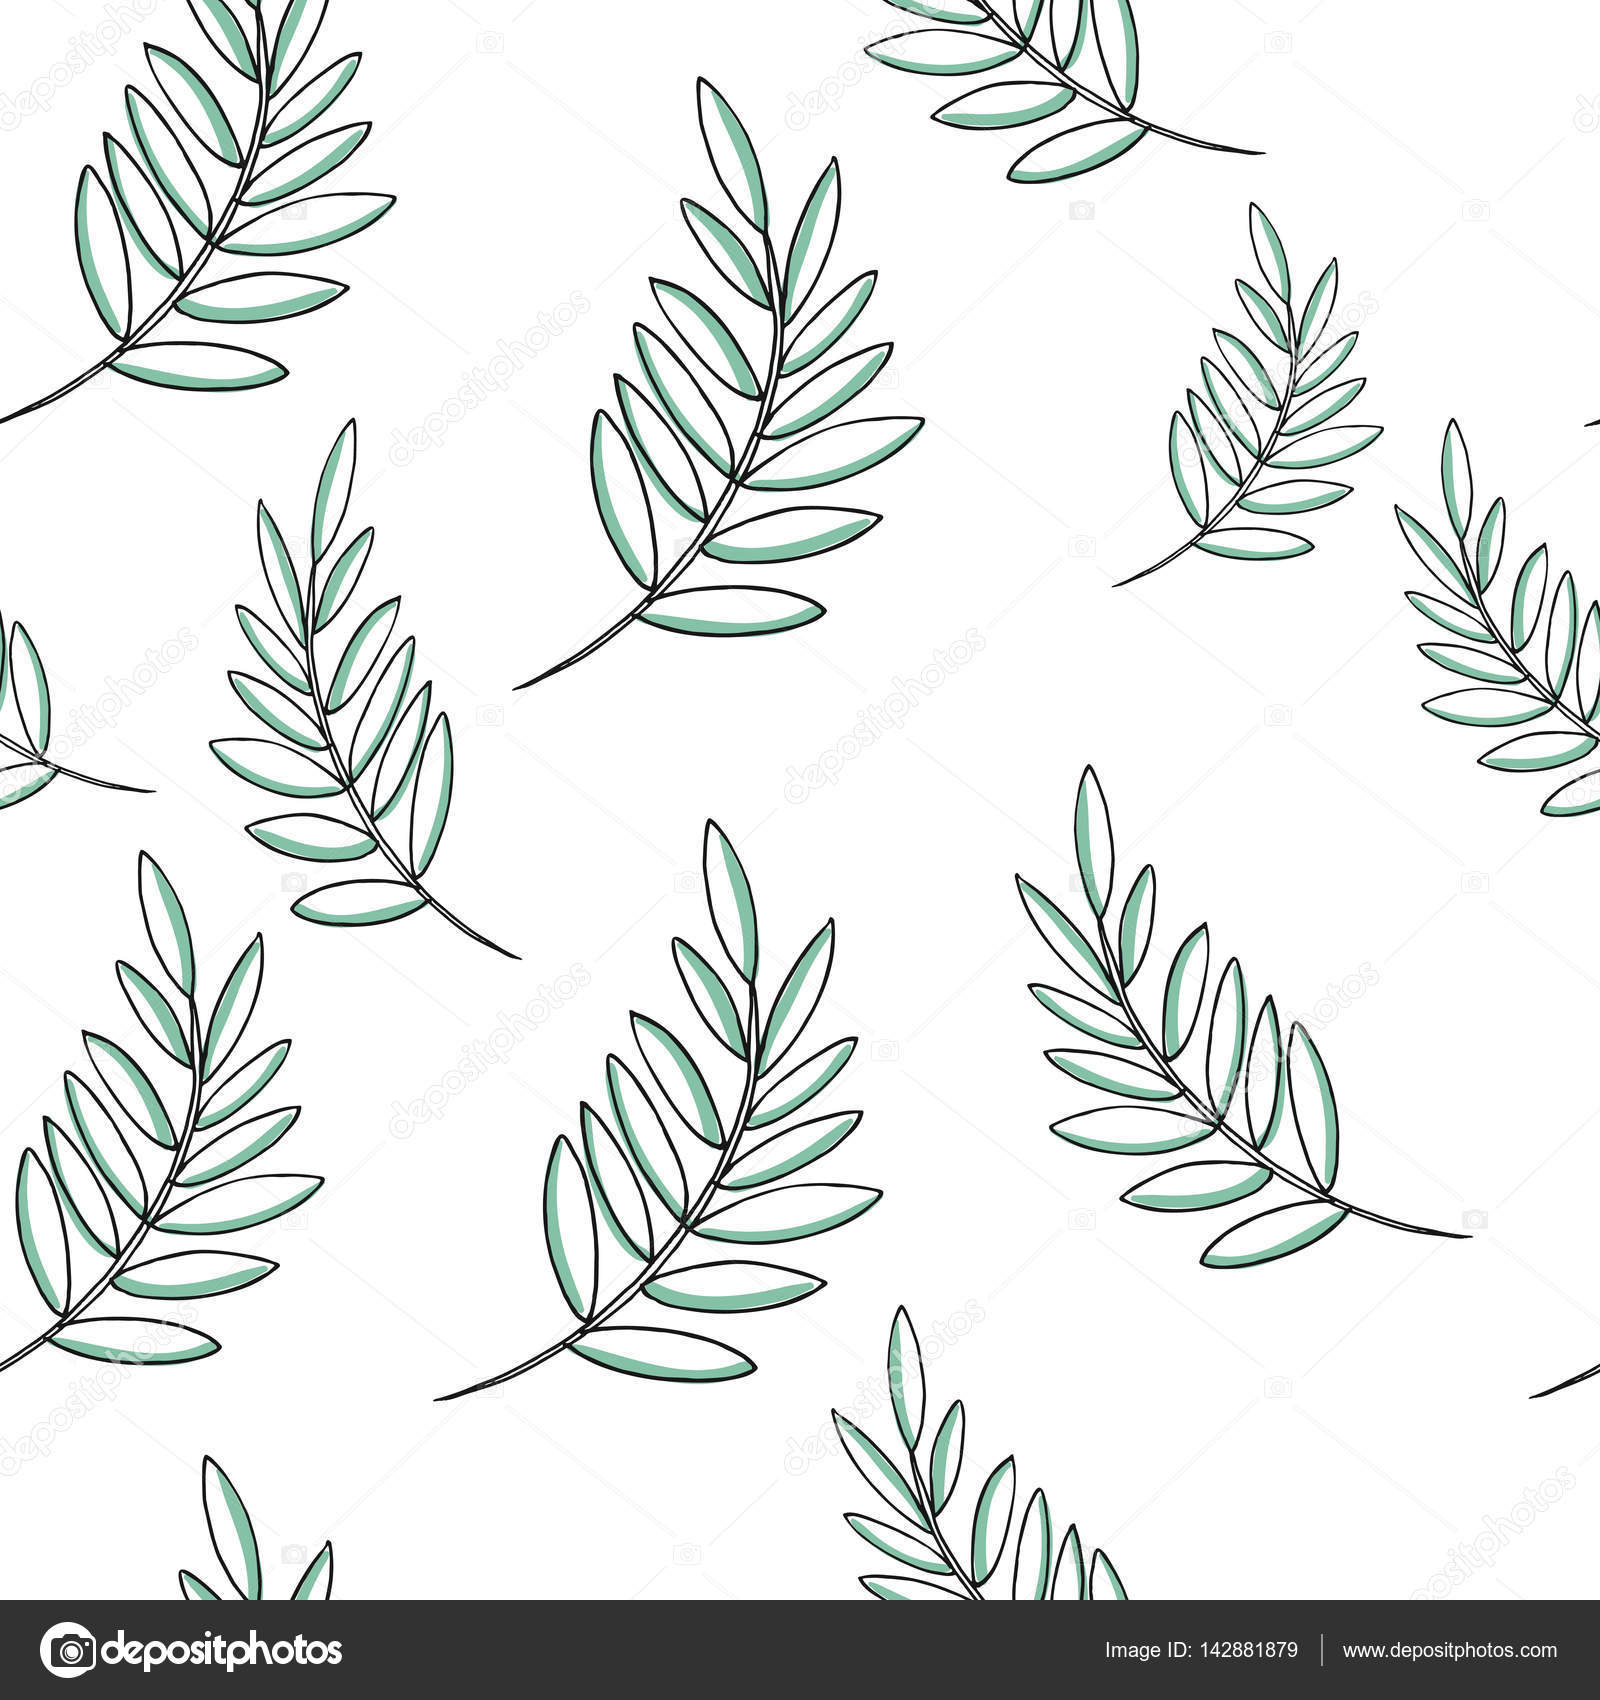 Leaf Vector Drawing Set Palm Leaves Pattern Herbal Engraved Style Illustration Organic Product Sketch Hand Drawn Leaf Stock Vector C Viki Tory 142881879